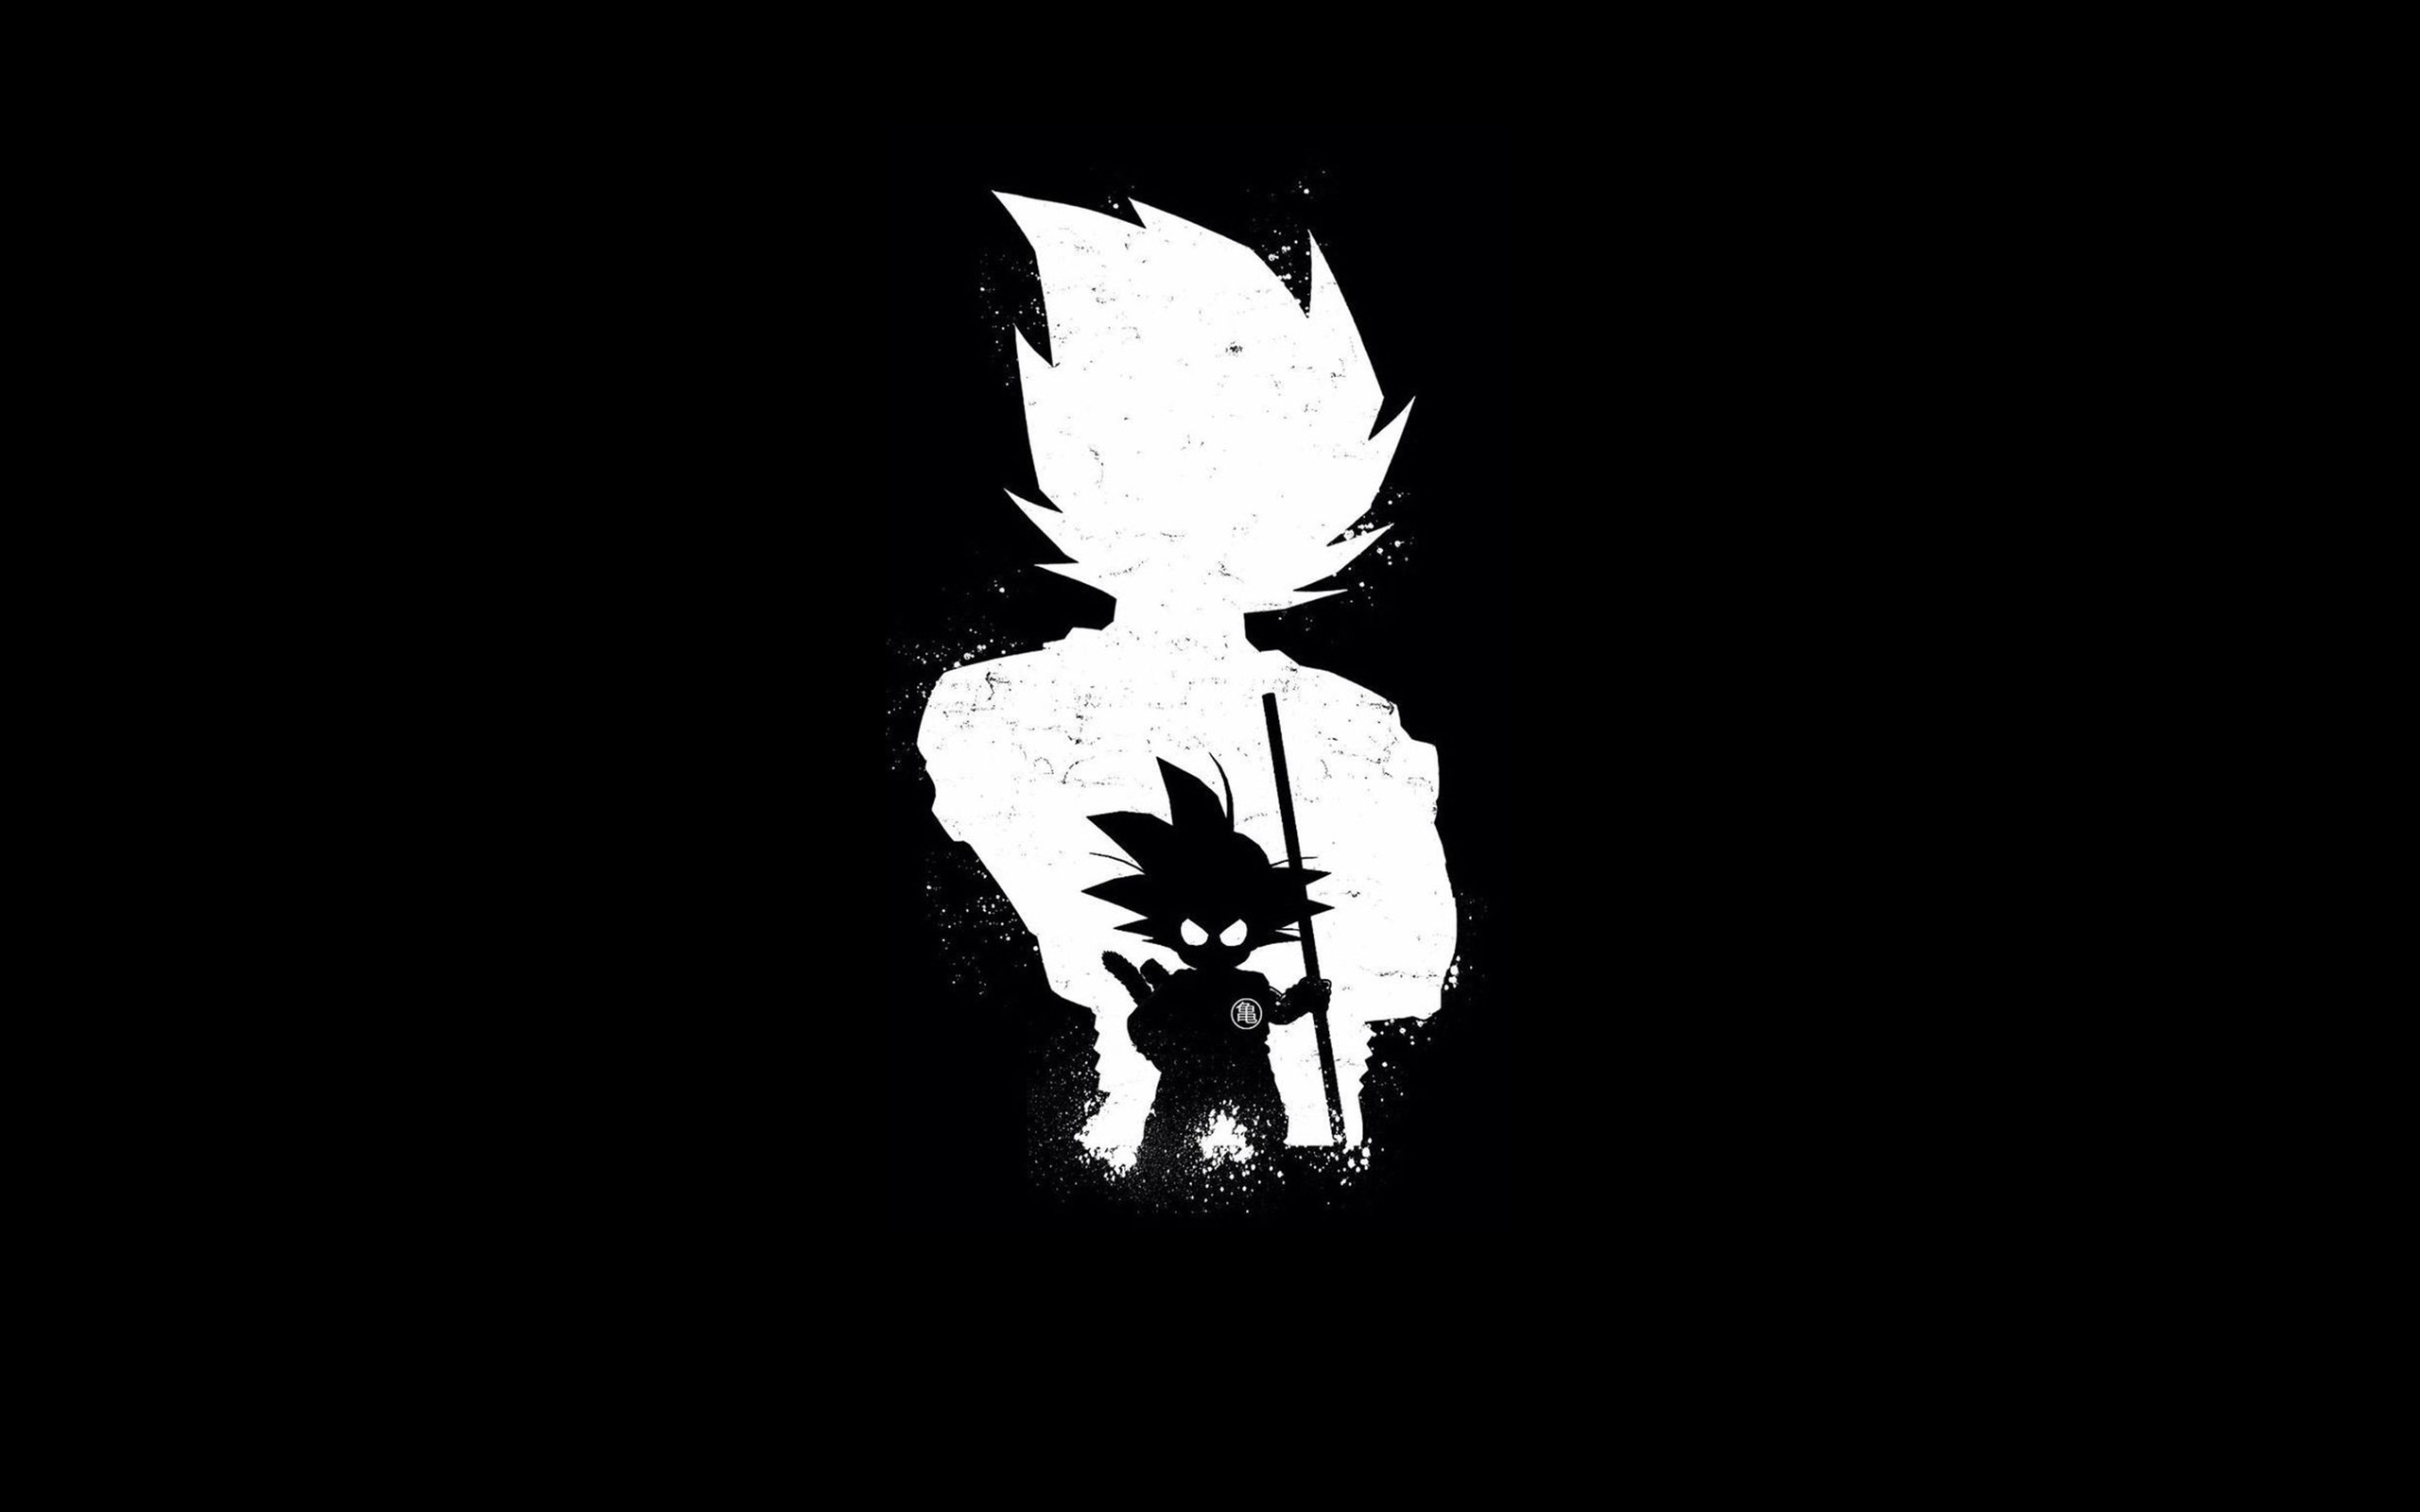 2560x1600 Goku Anime Dark Black 4k 2560x1600 Resolution Hd 4k Wallpapers Images Backgrounds Photos And Pictures